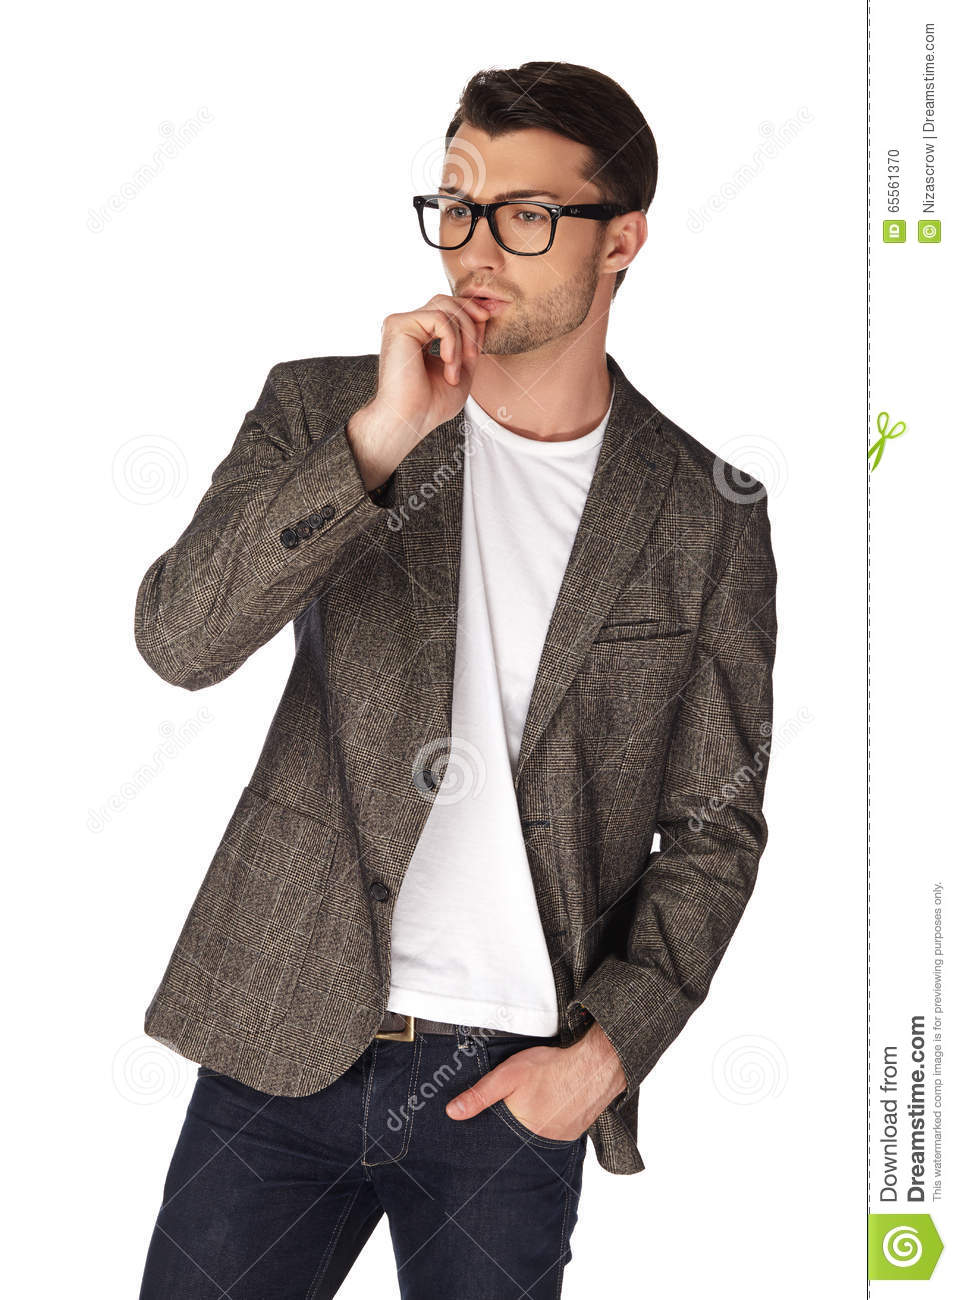 The Guy In Jeans White T-shirt Jacket And Glasses Stock Photo